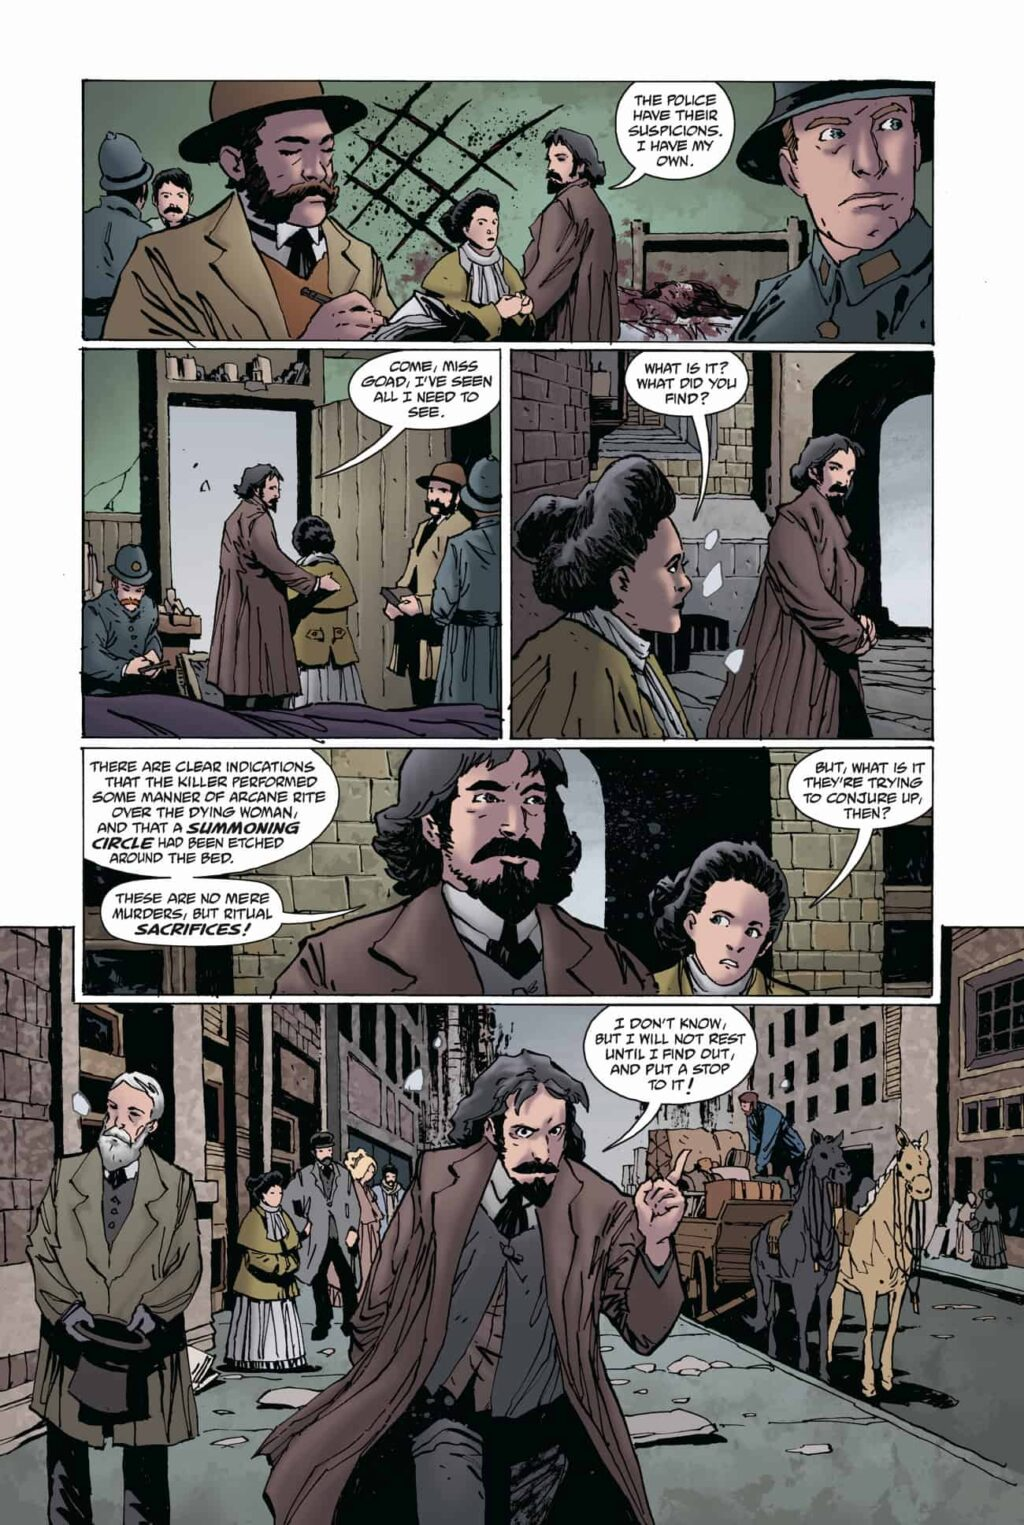 WFROD i1 PG 04 1024x1525 - Exclusive Preview: Jack the Ripper Haunts the Pages of WITCHFINDER: REIGN OF DARKNESS